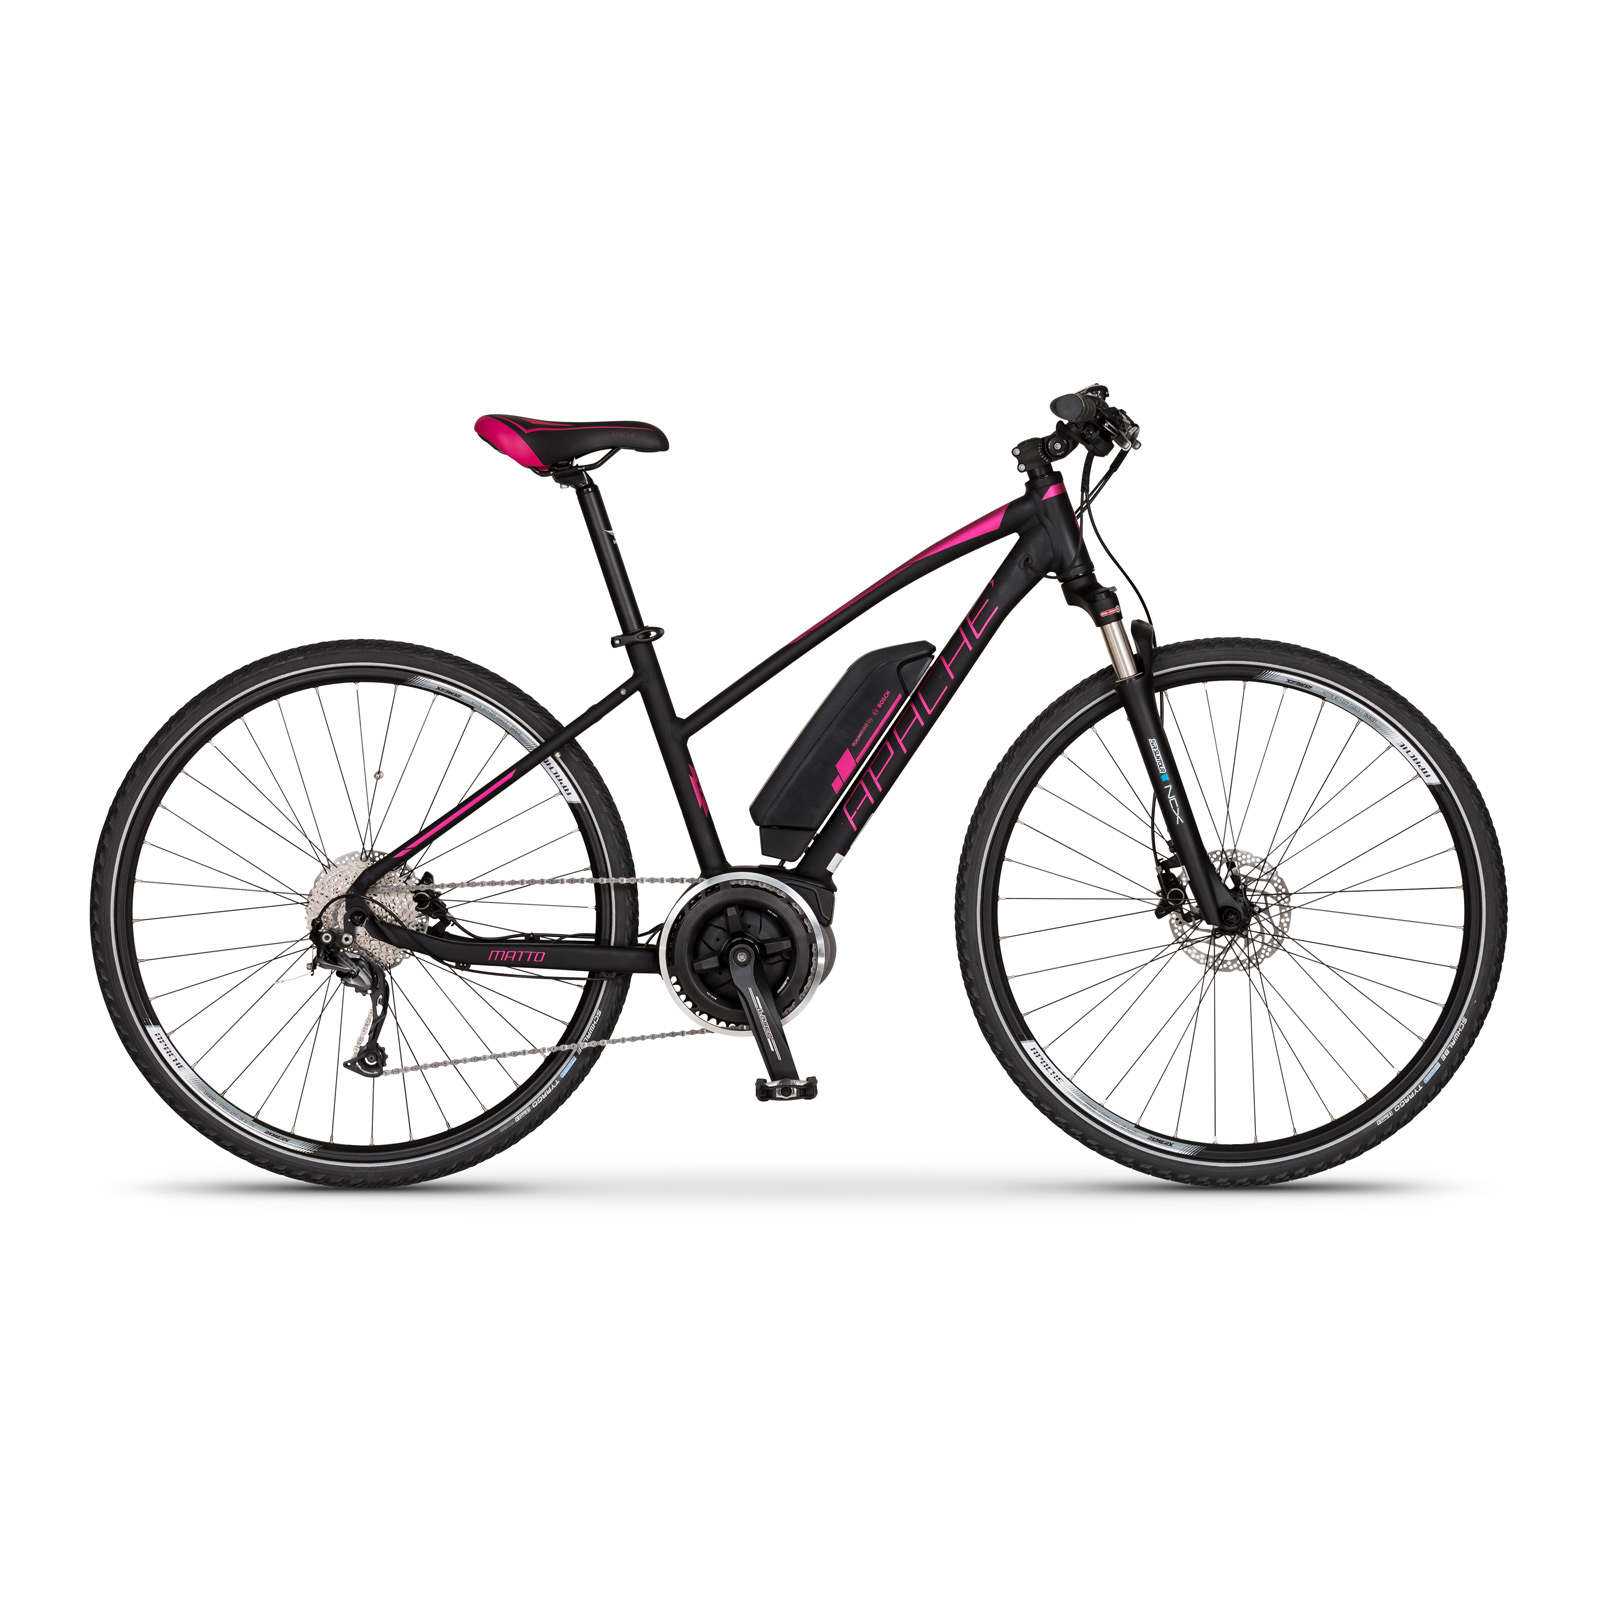 Elektrokolo cross Apache Matto lady Bosch Active Plus 400 Wh černá 2018